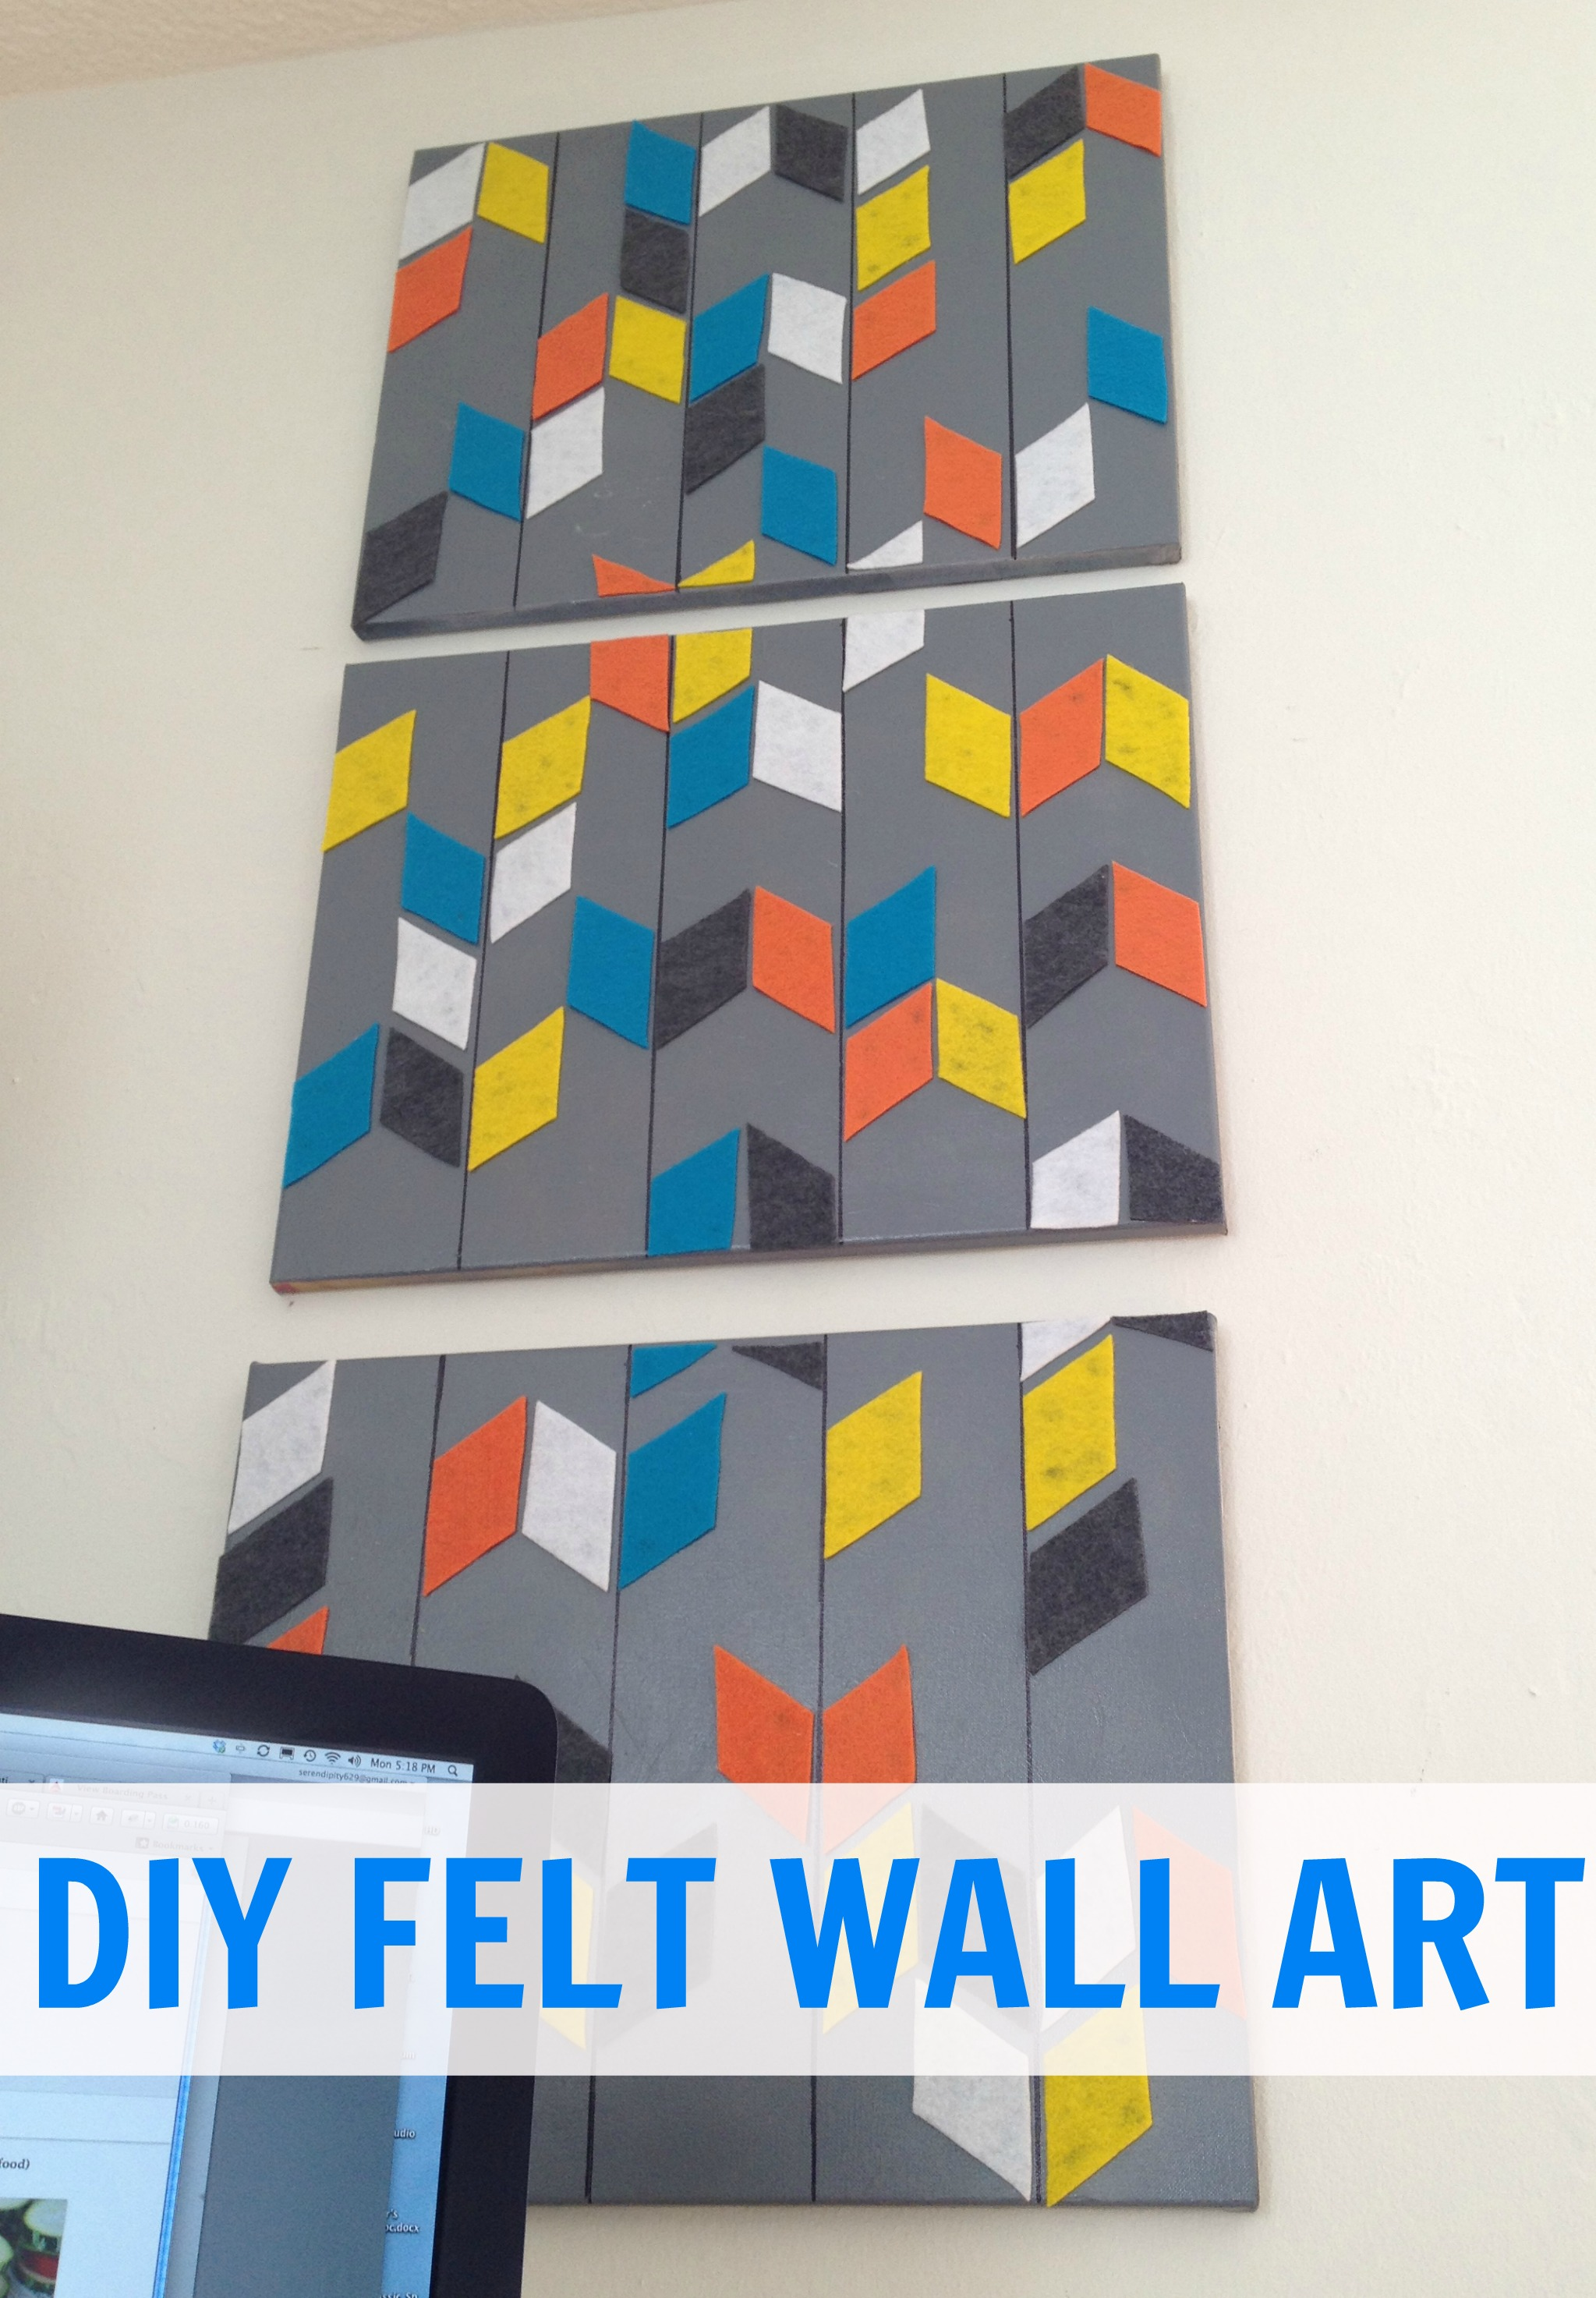 diy wall art & DIY wall art perfect for a rental - C.R.A.F.T.